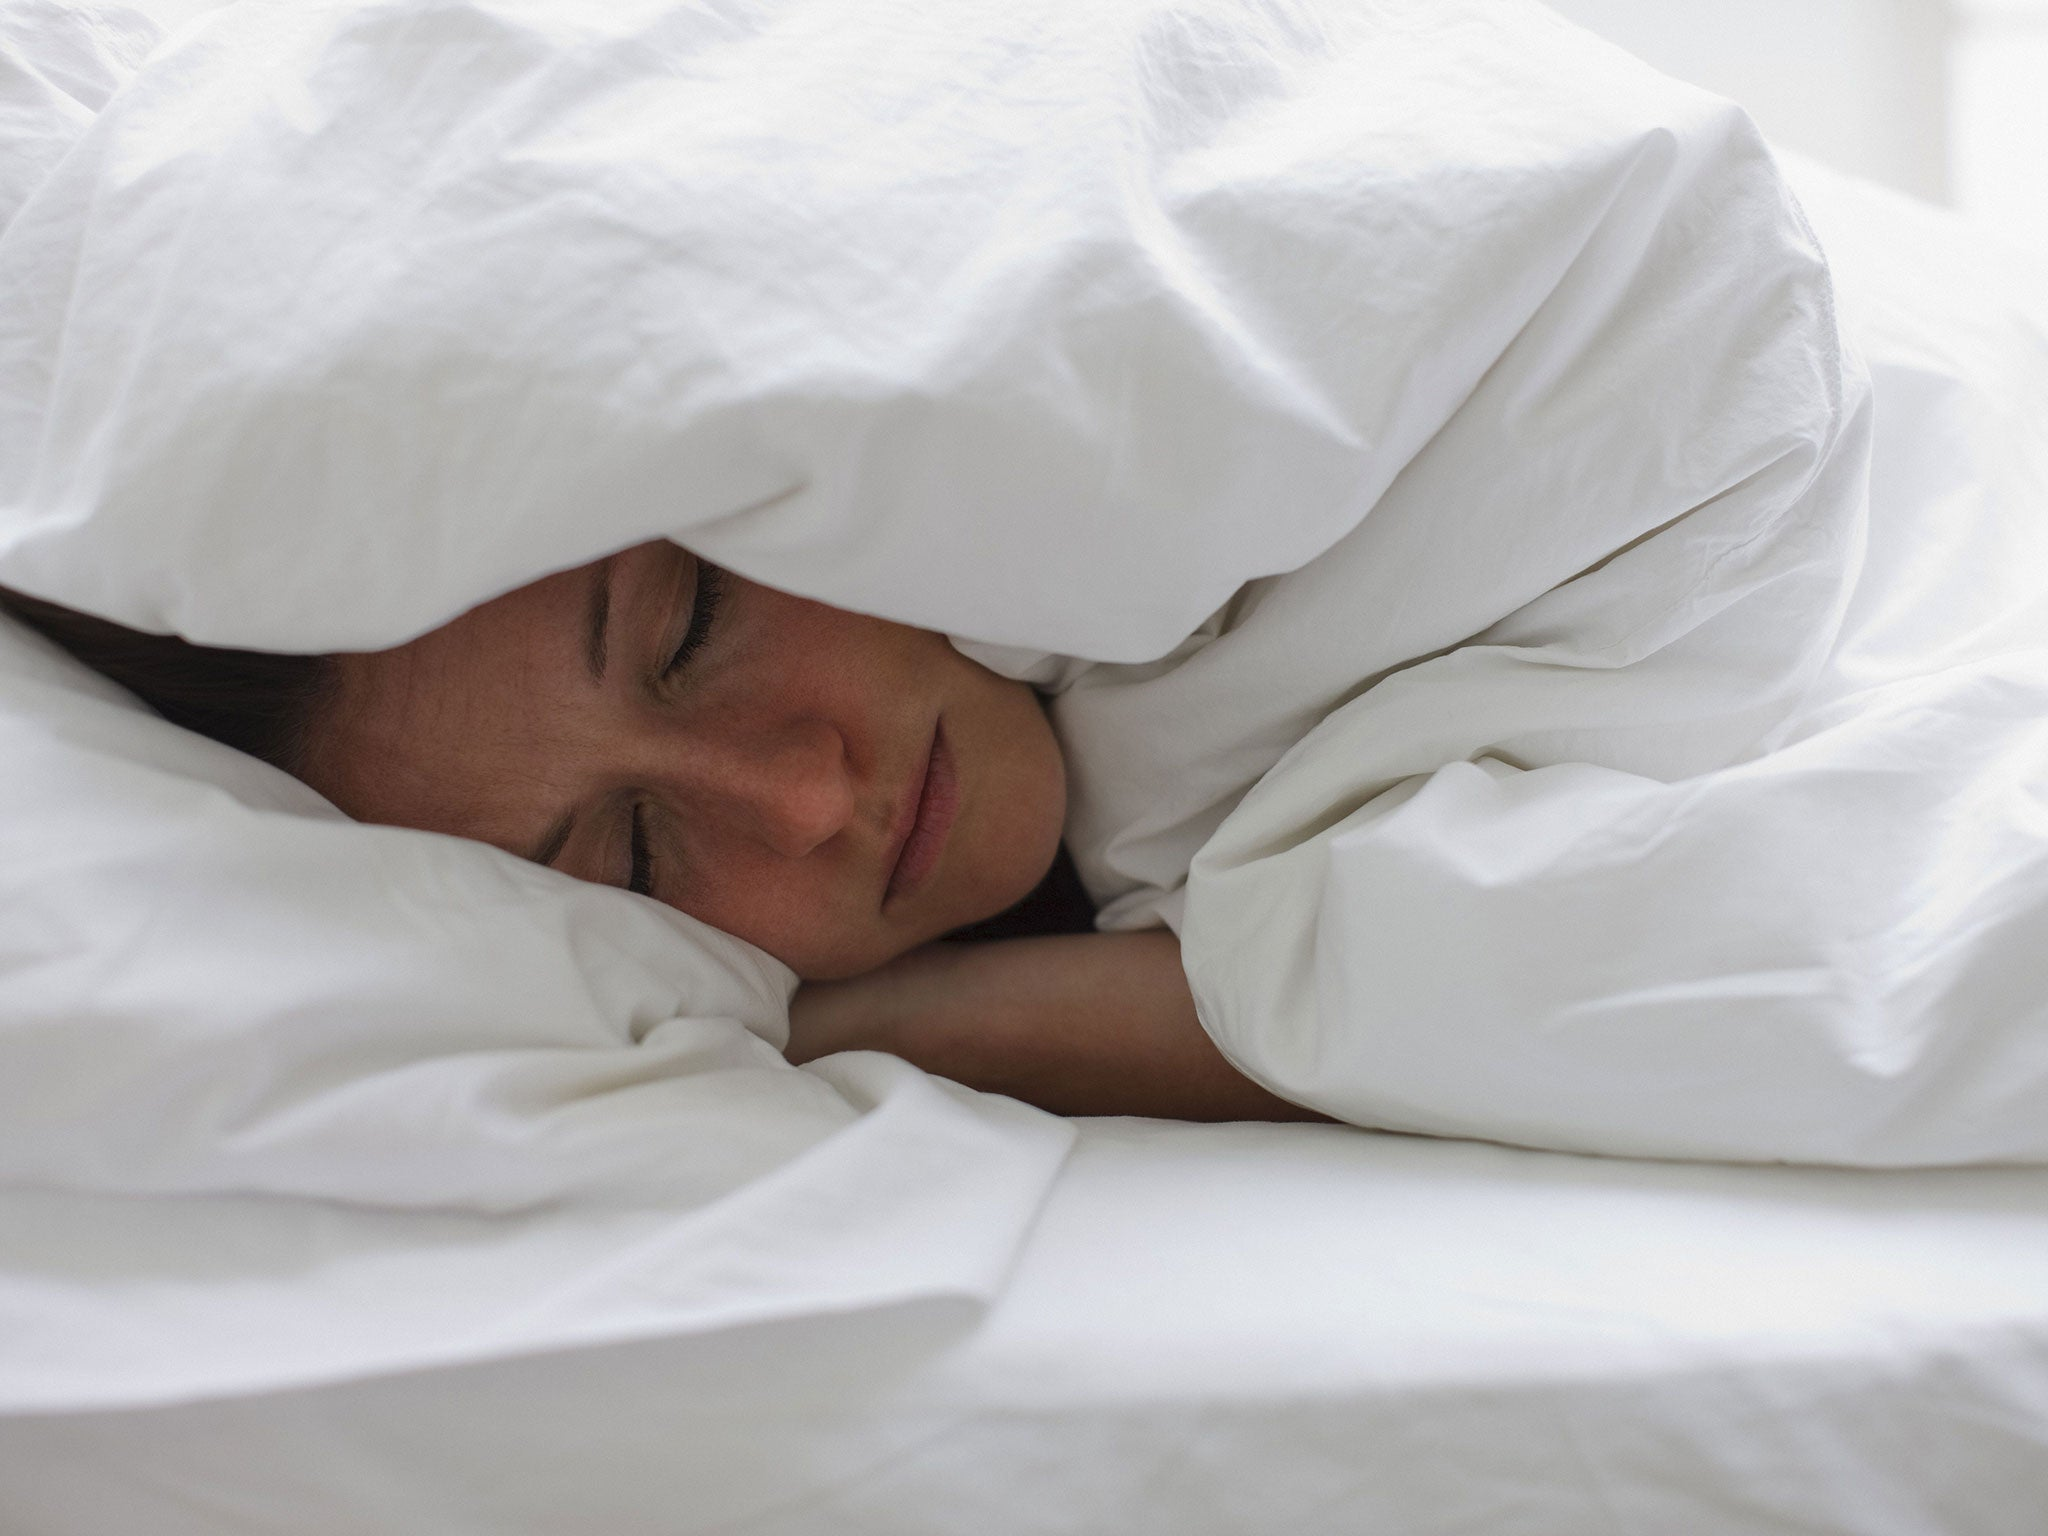 Norovirus: What are the symptoms of the winter vomiting bug